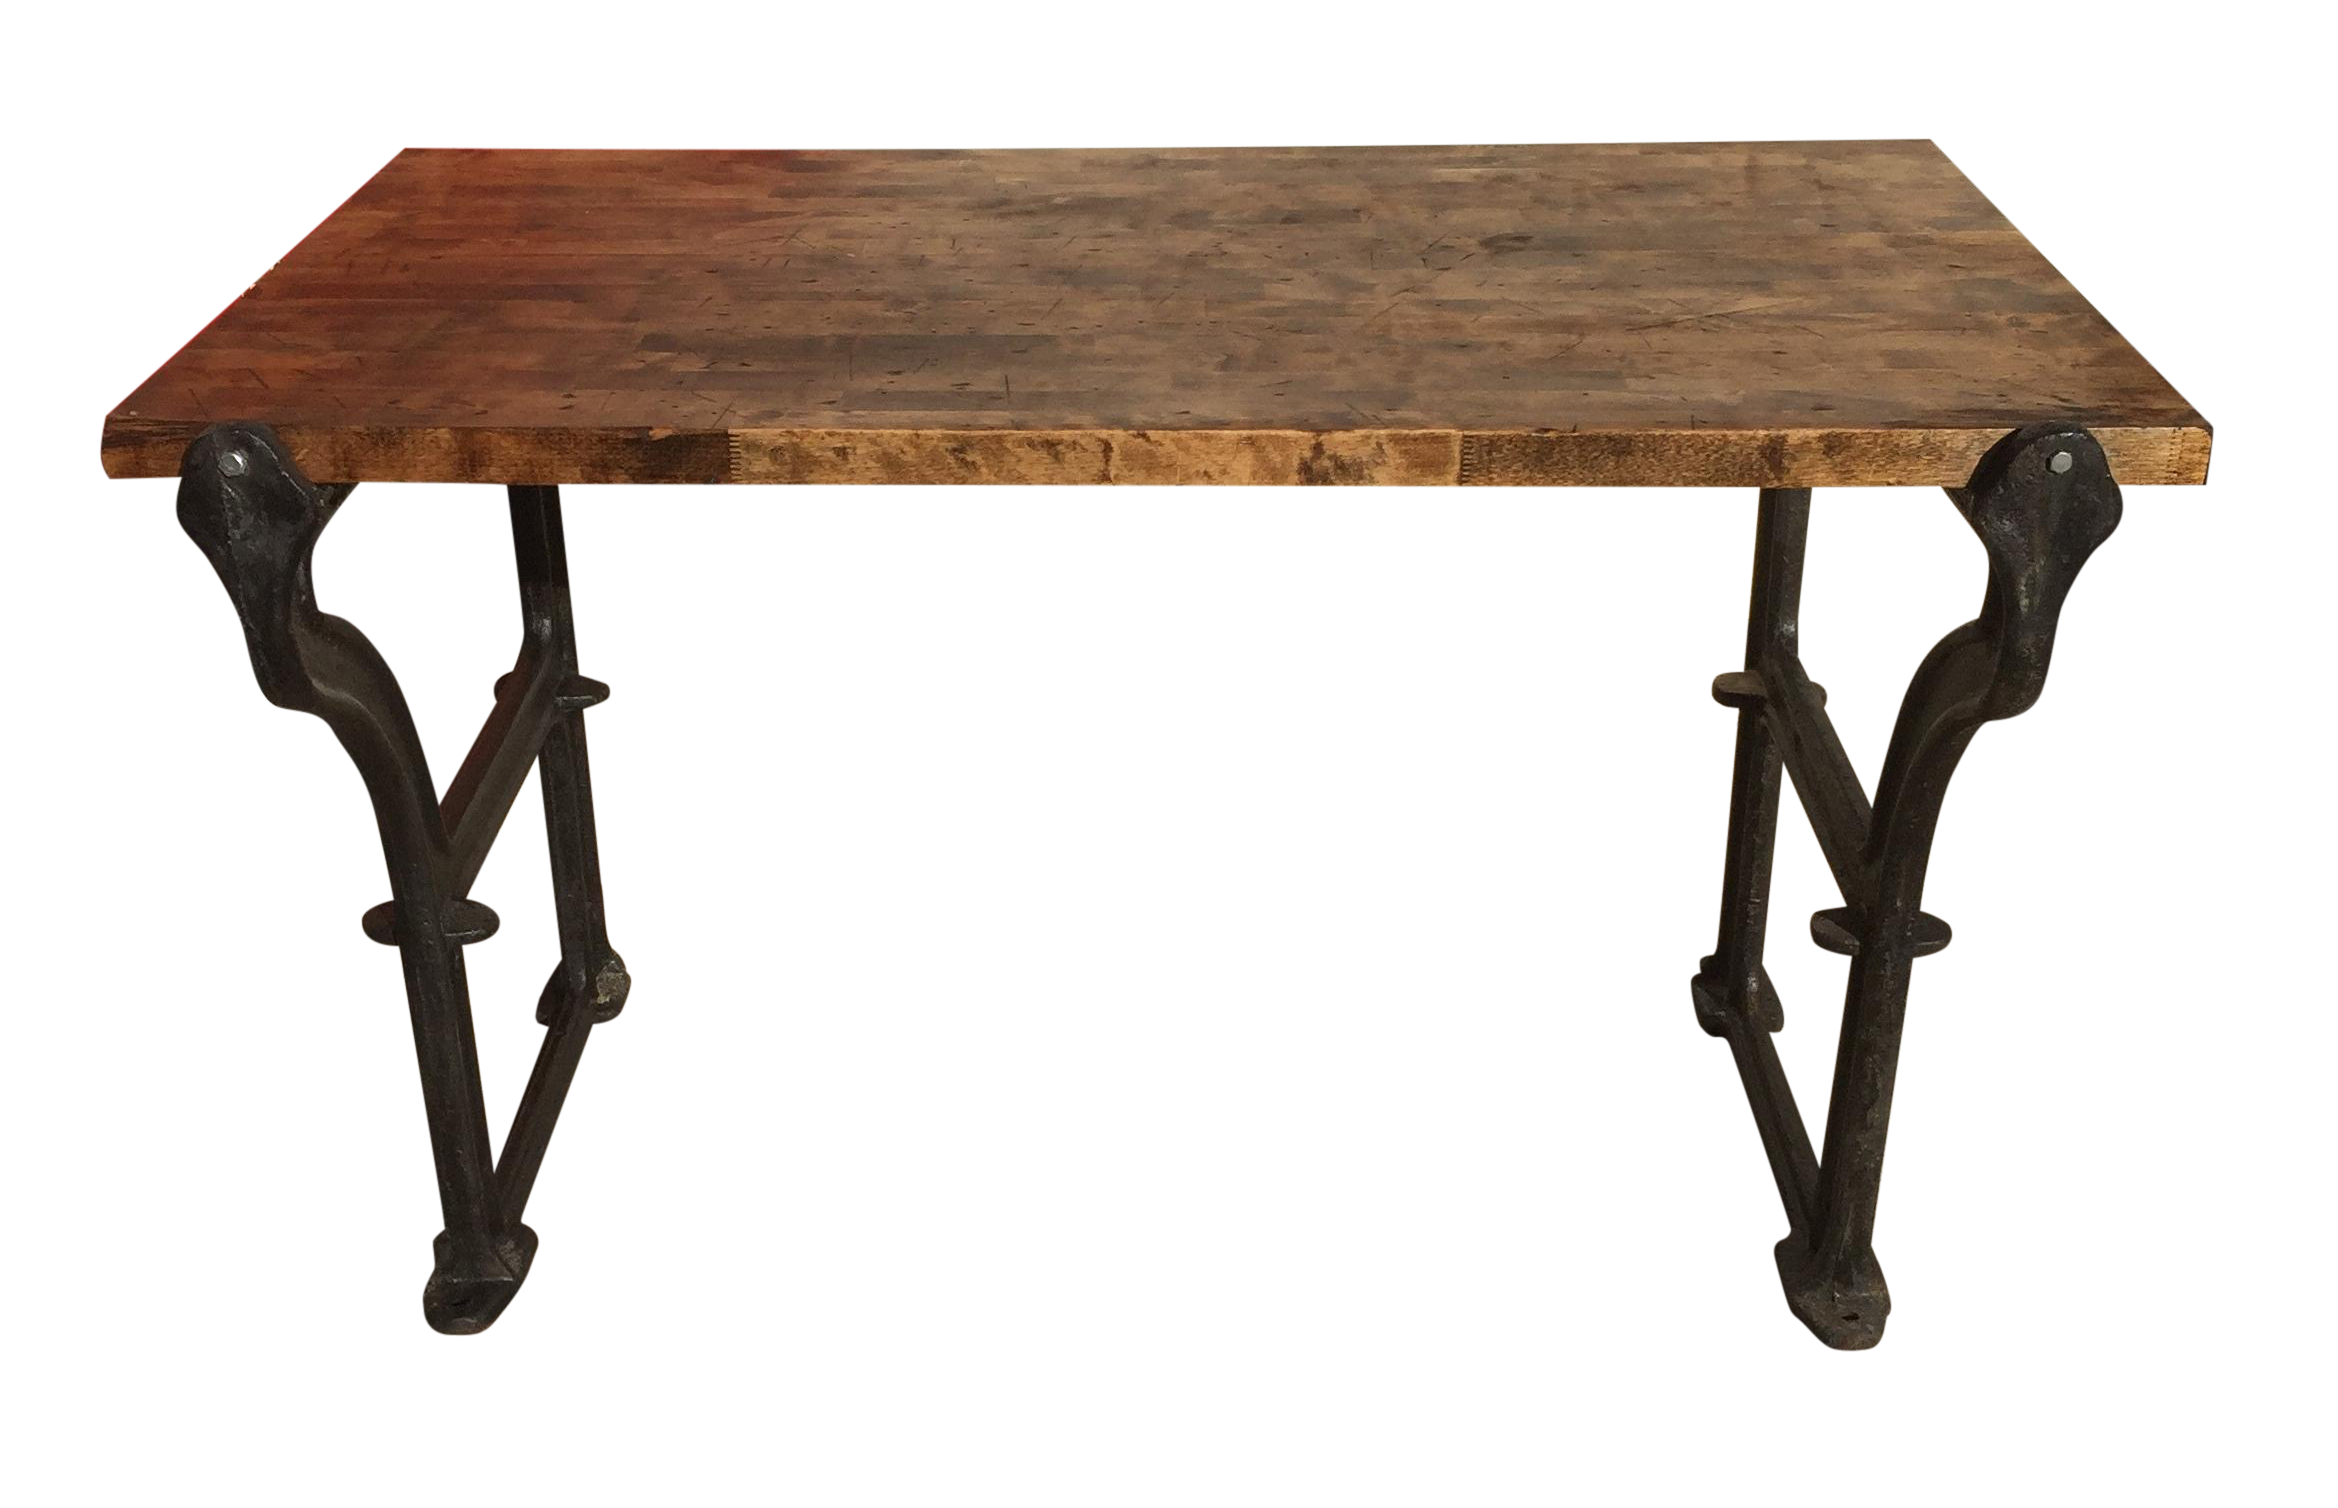 This is a butcher block kitchen island our shop made from original ...